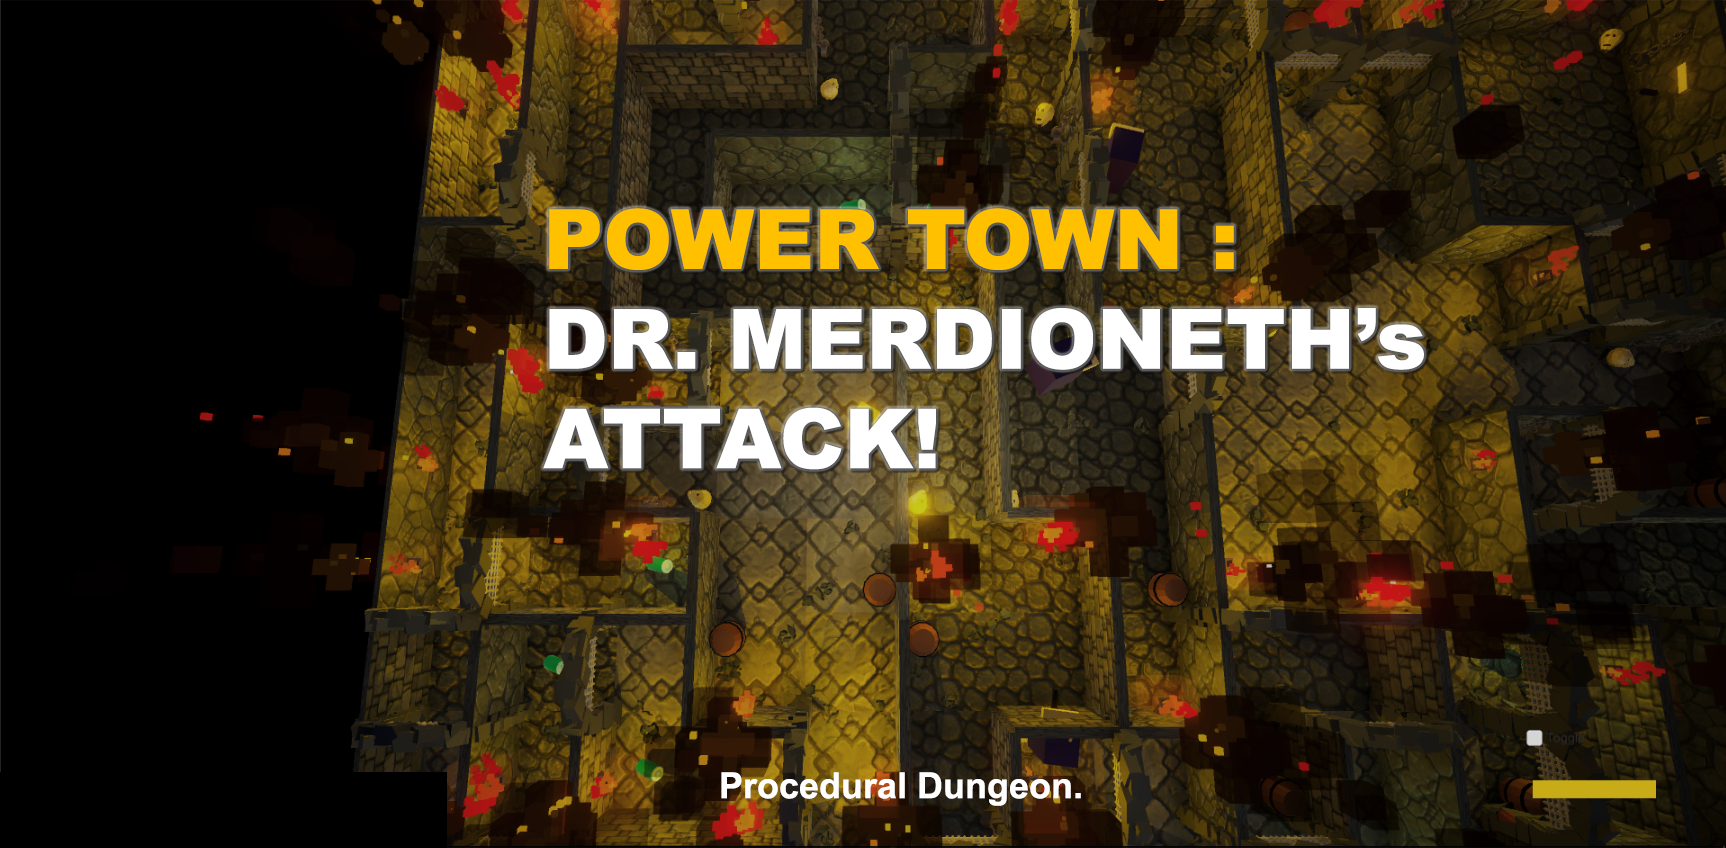 Power Town - Episode 1 : Dr. Merdioneth's Attack!